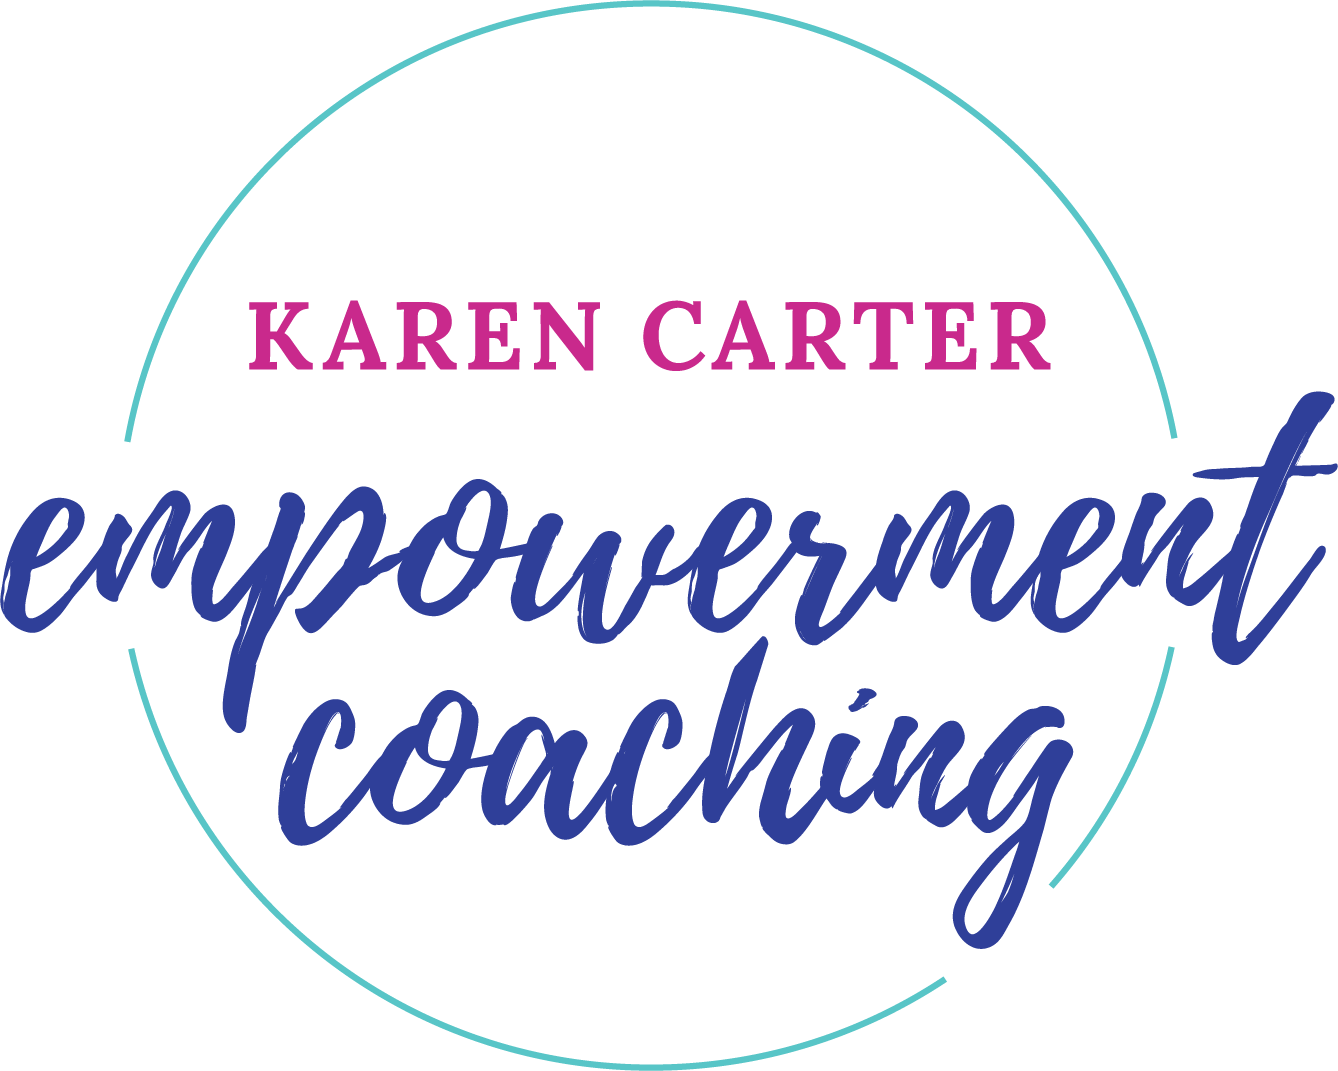 Karen Carter Empowerment Coaching